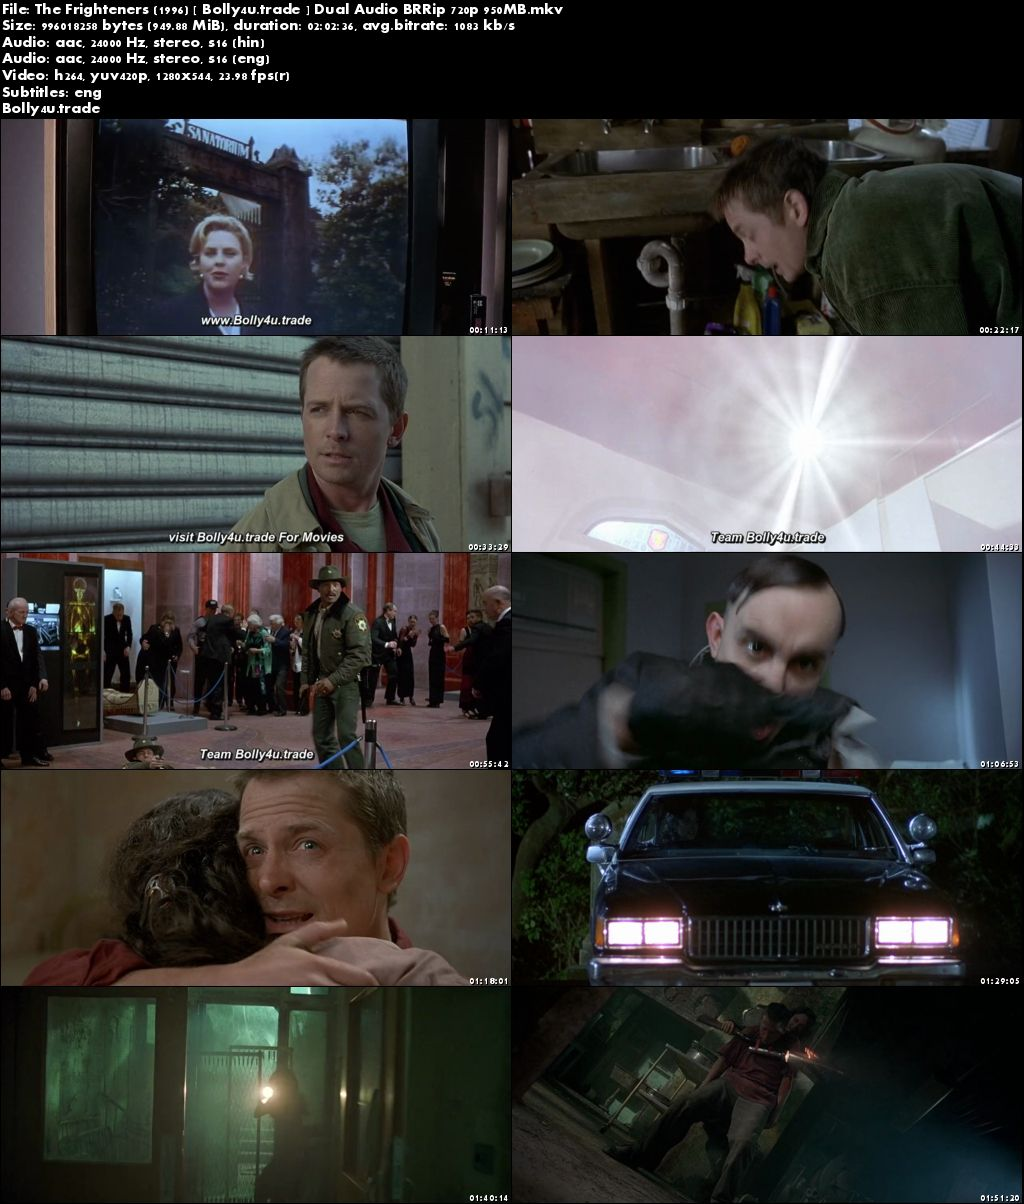 The Frighteners 1996 BRRip 950MB Hindi Dual Audio 720p Download